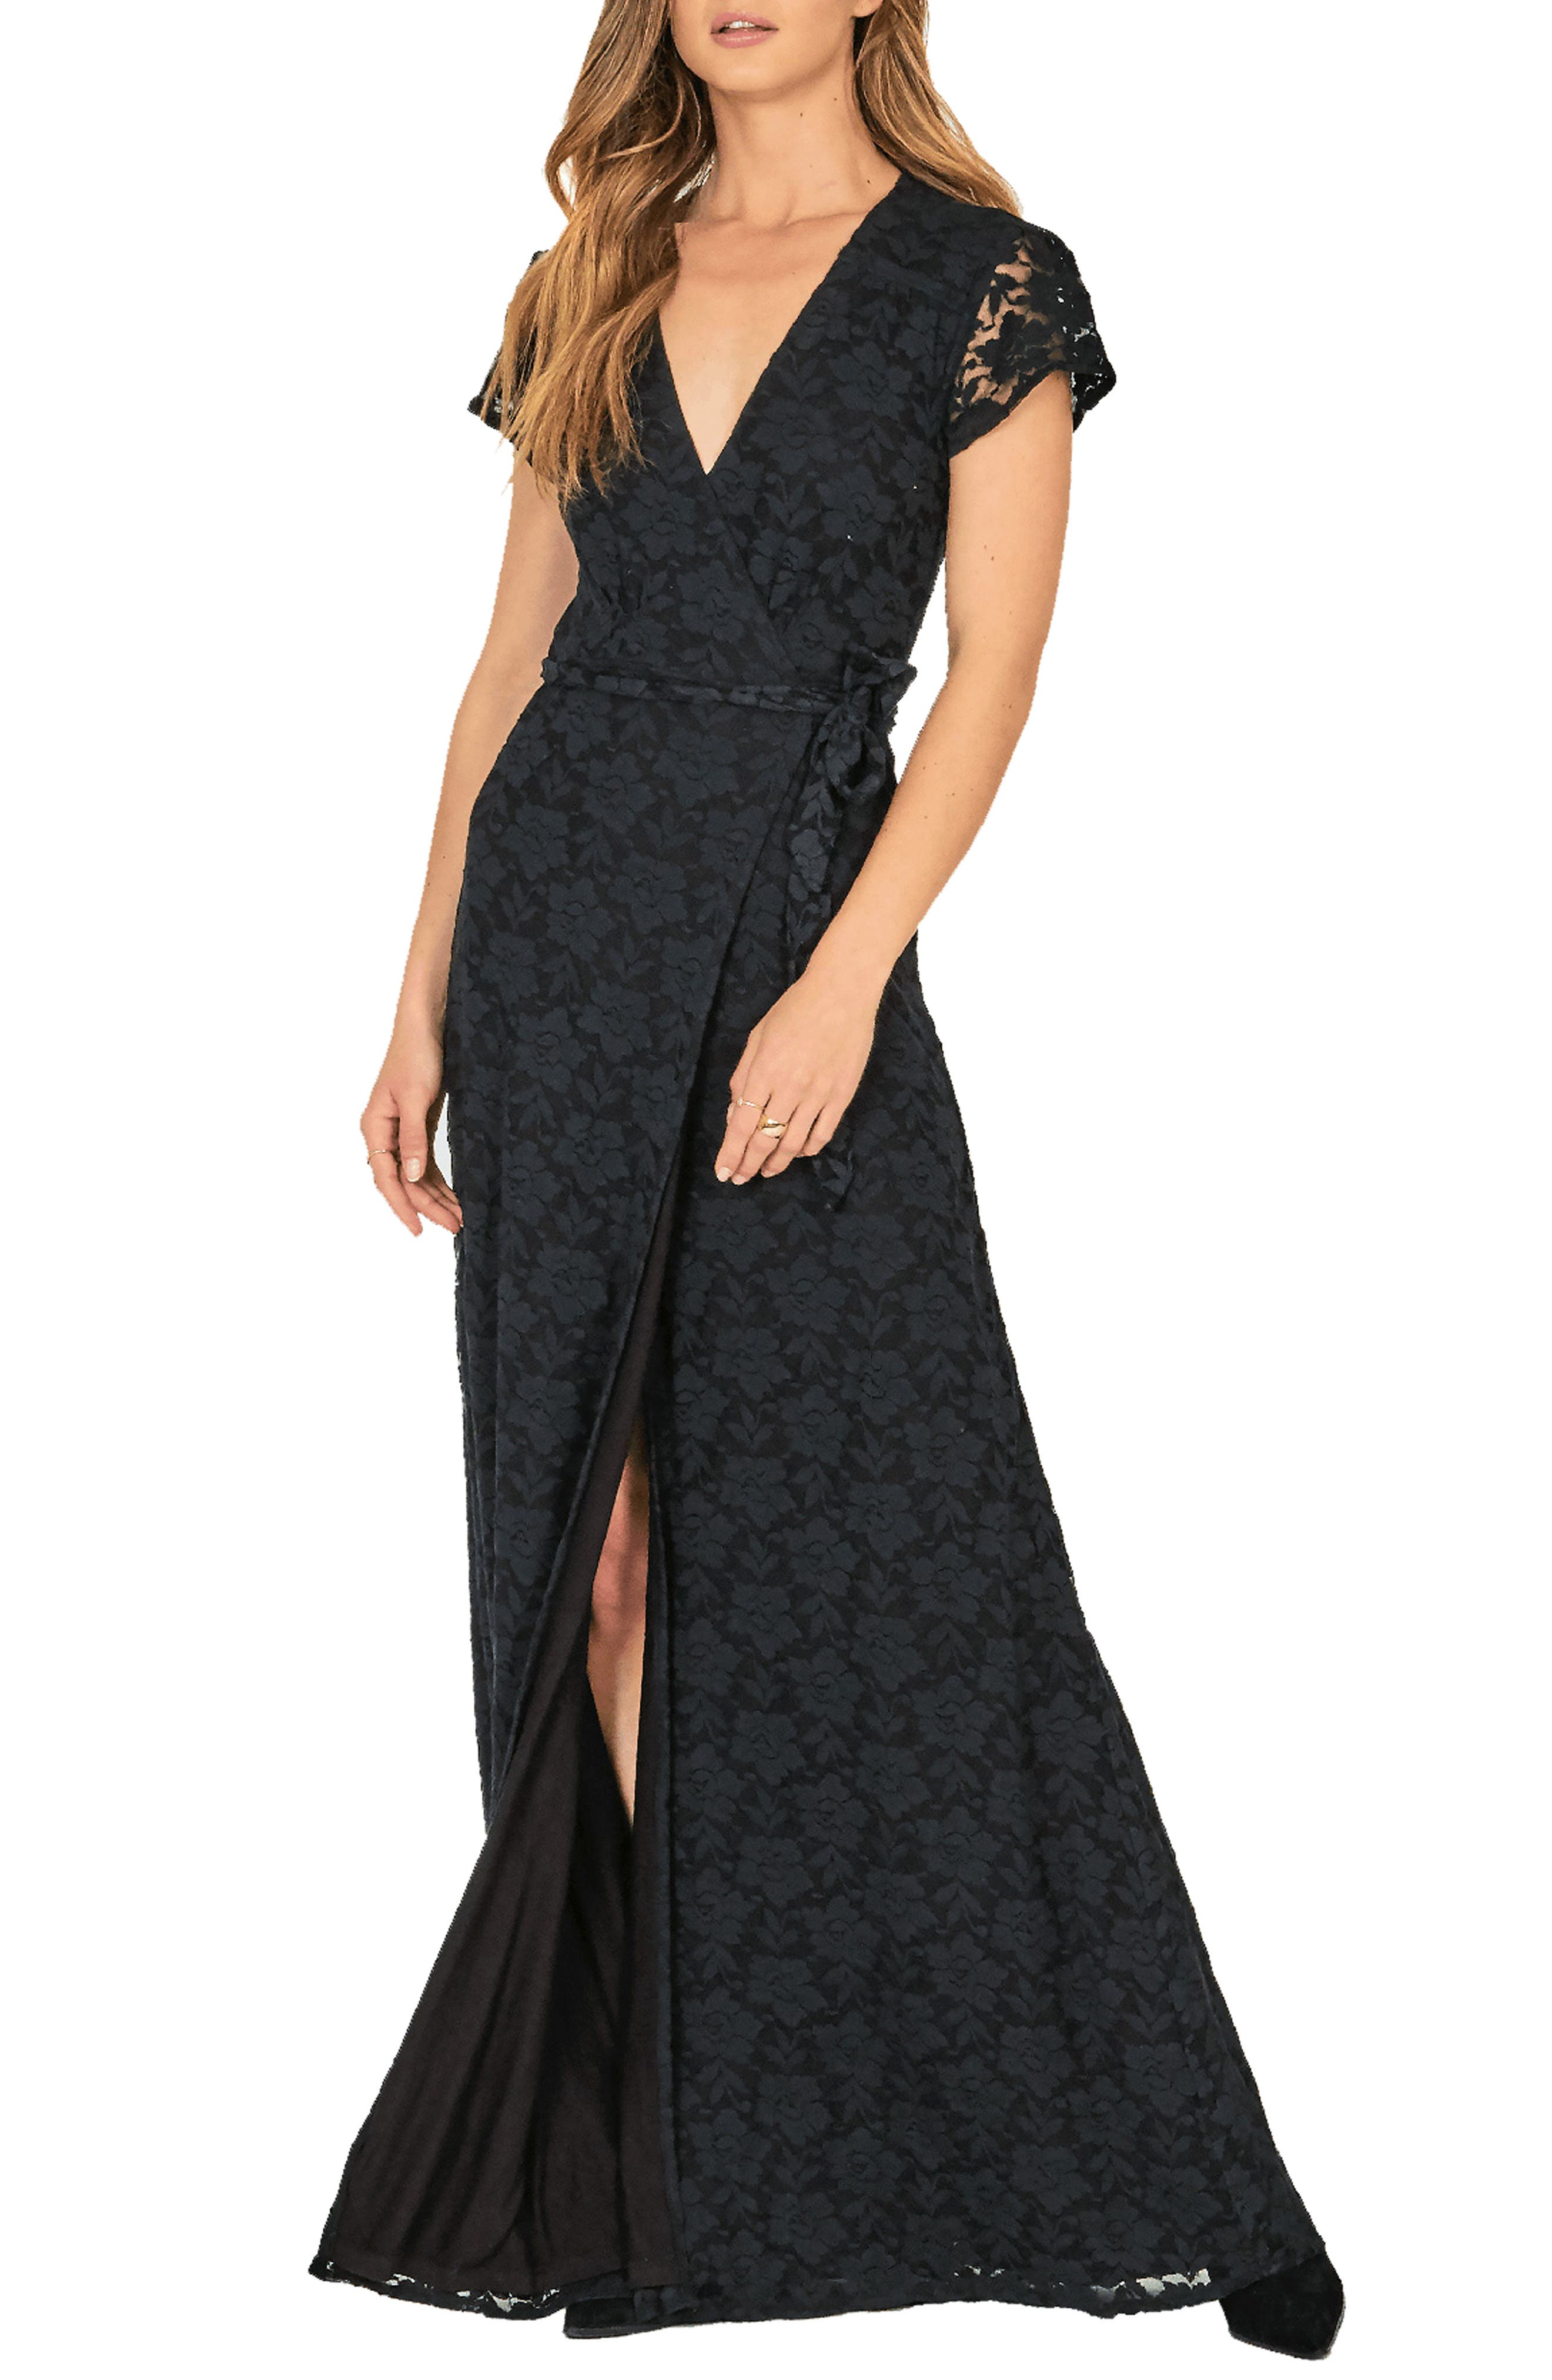 AMUSE SOCIETY Great Lengths Wrap Dress in Black